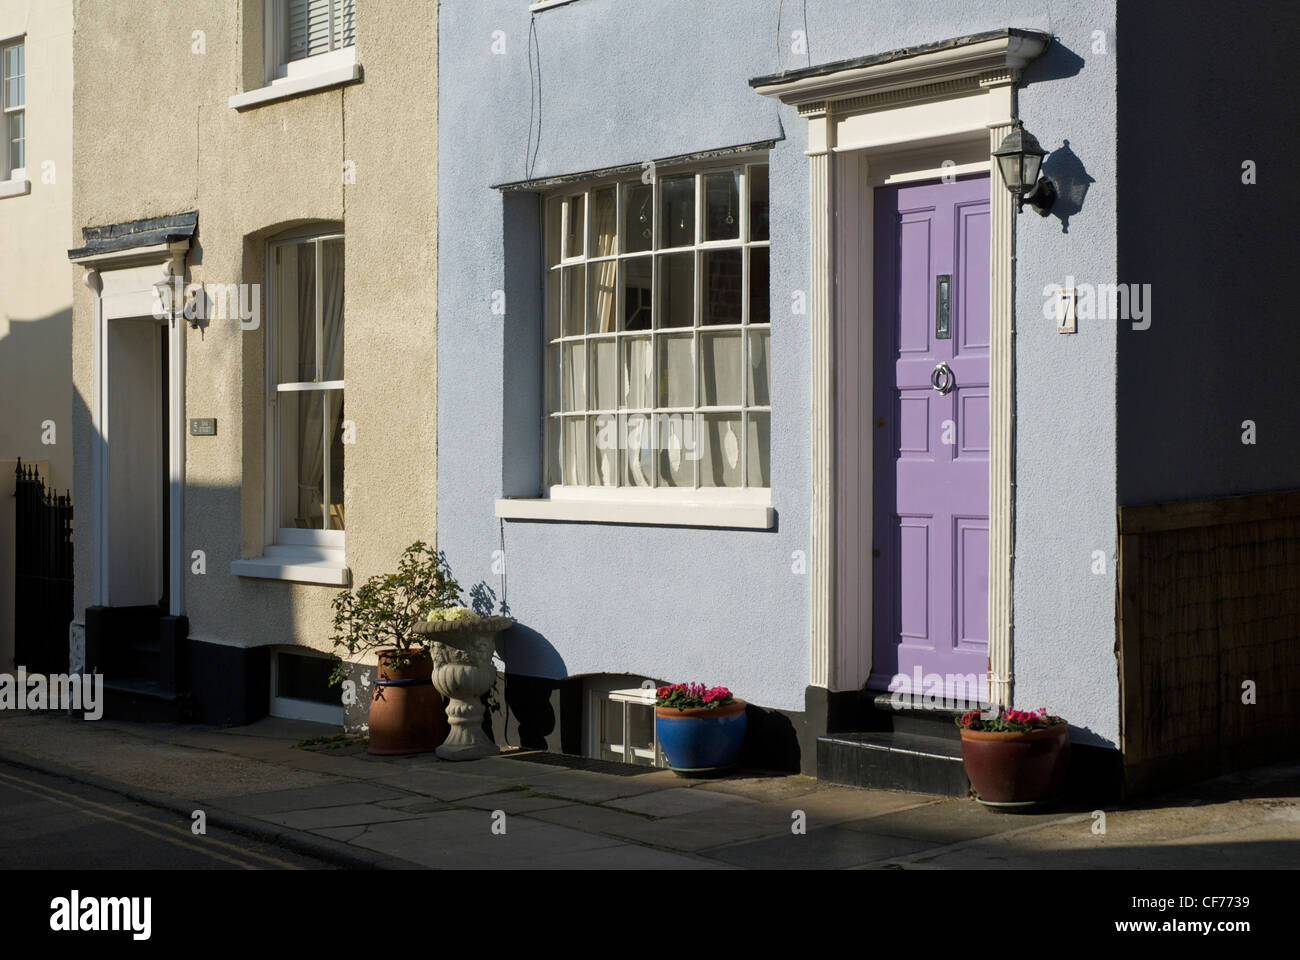 House in Deal, Kent, England, UK - Stock Image